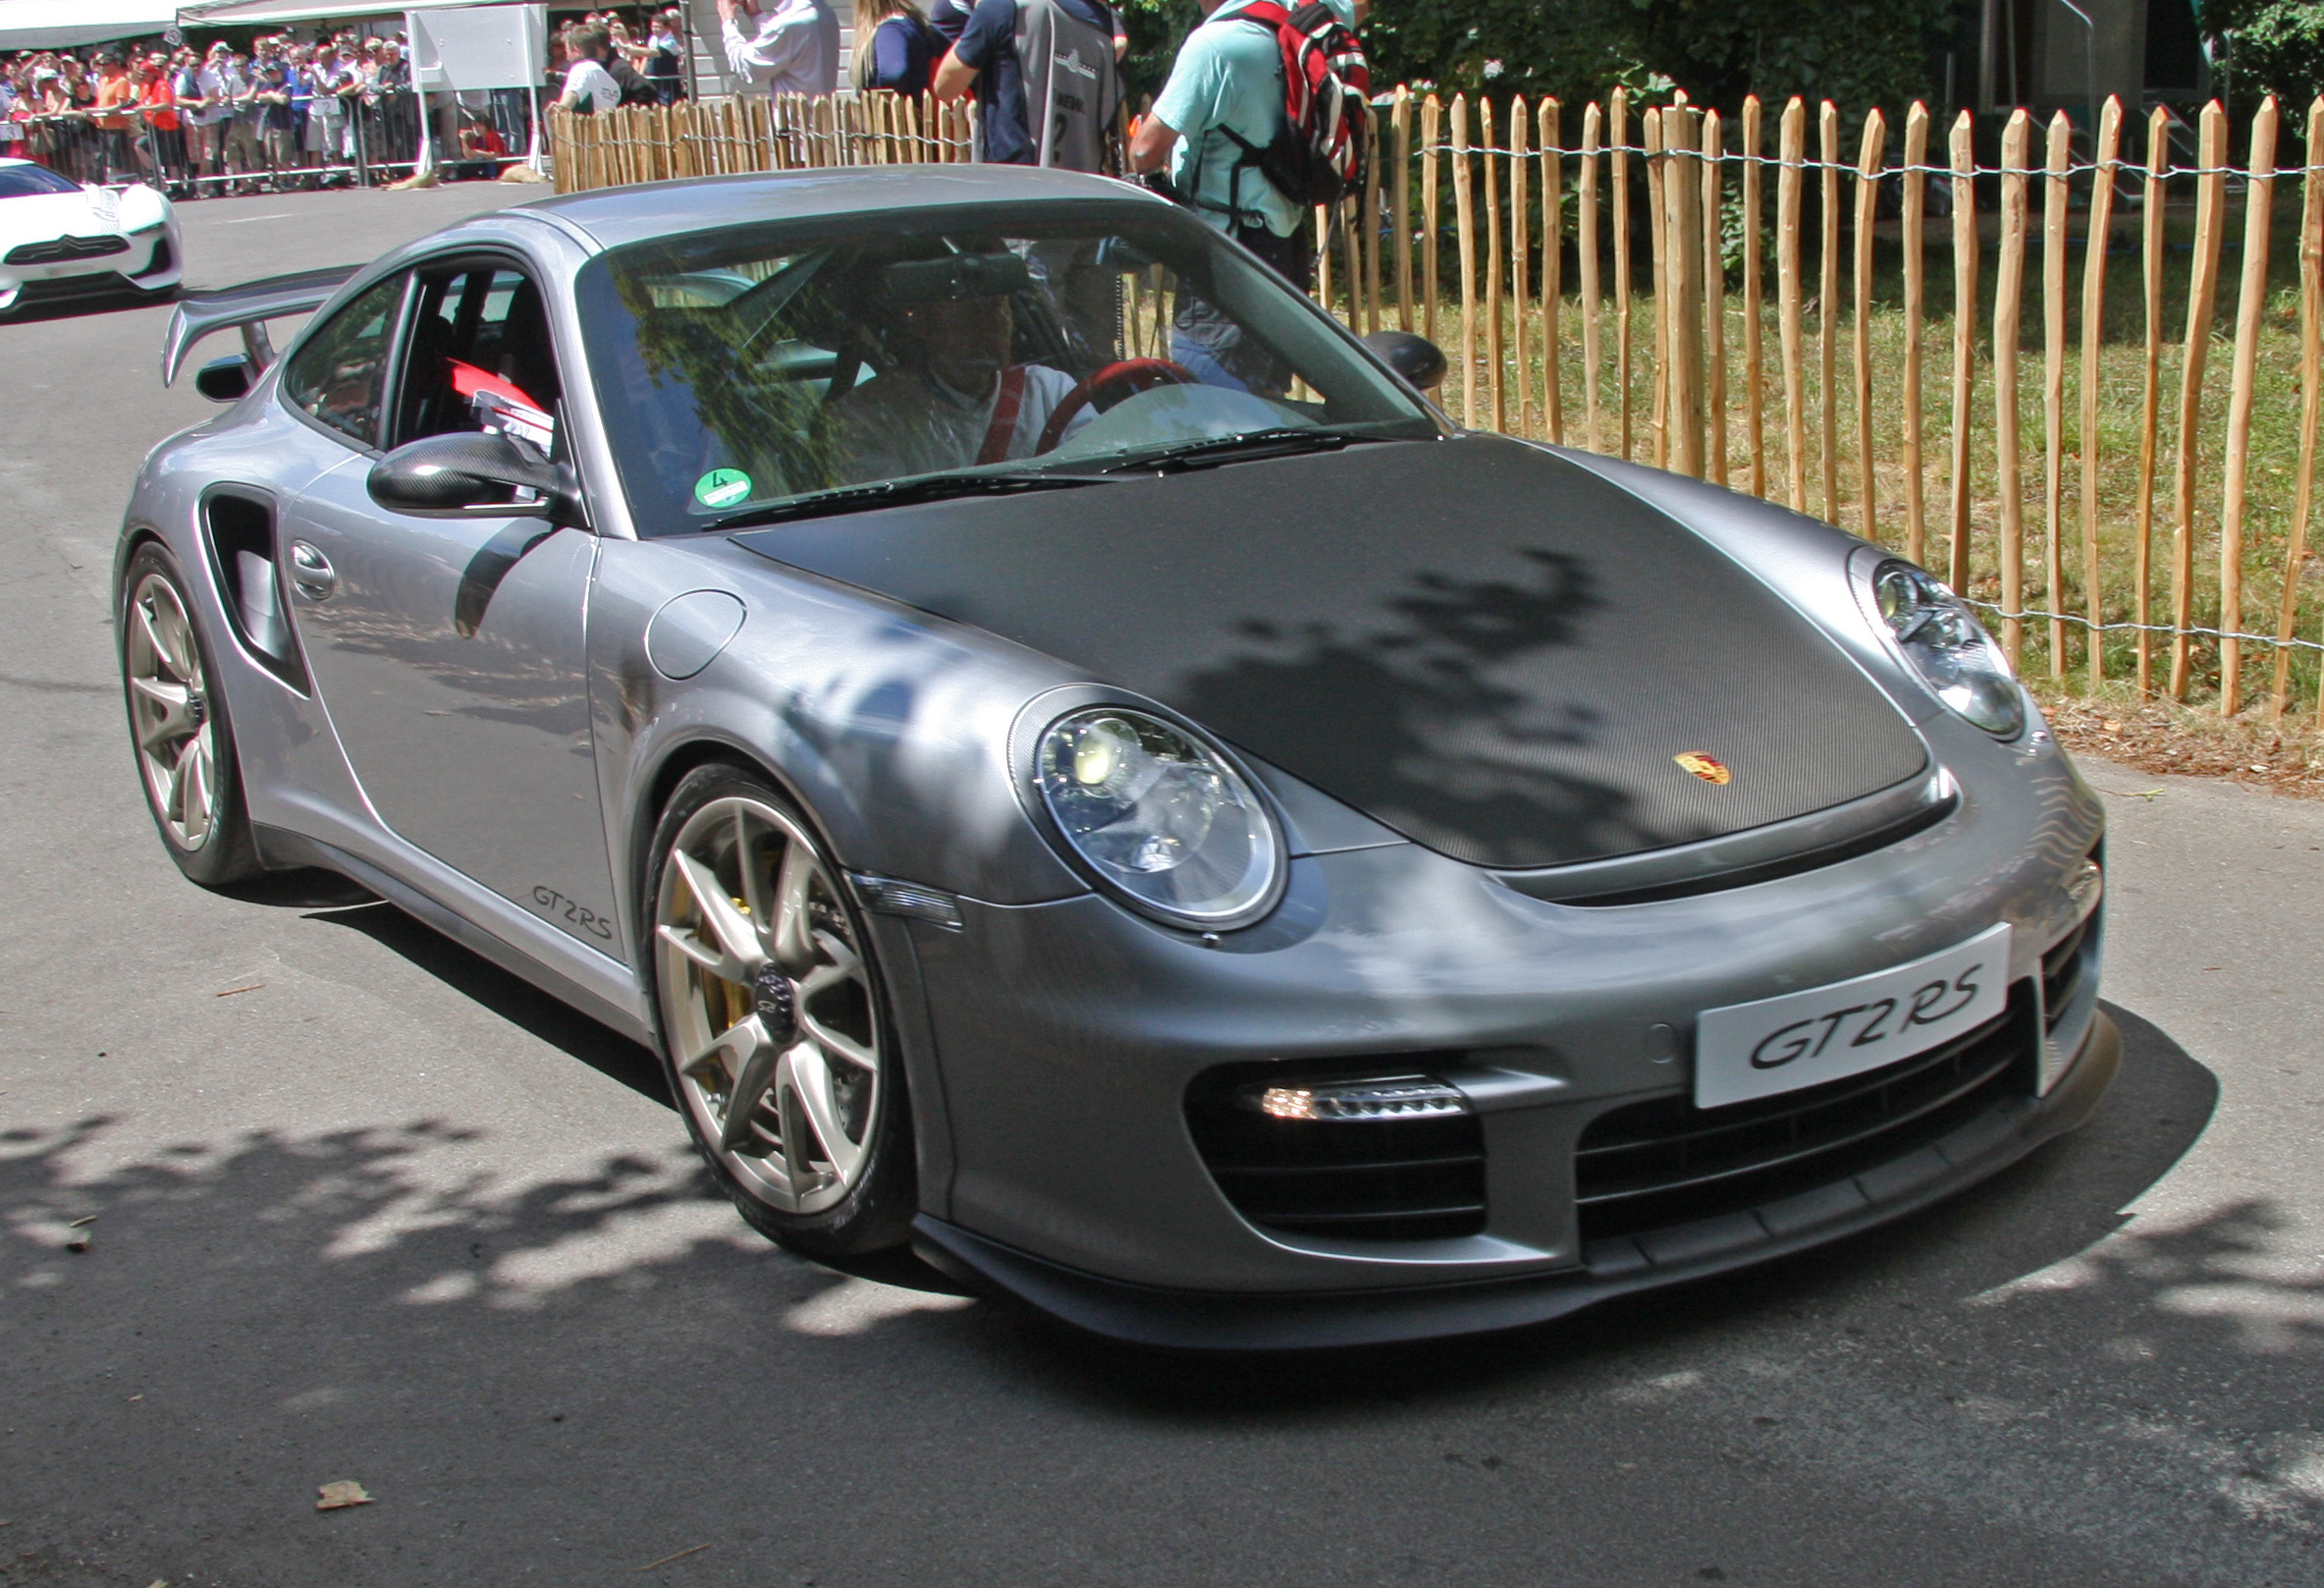 file 2010 07 04 silver porsche 997 gt2 rs wikimedia commons. Black Bedroom Furniture Sets. Home Design Ideas